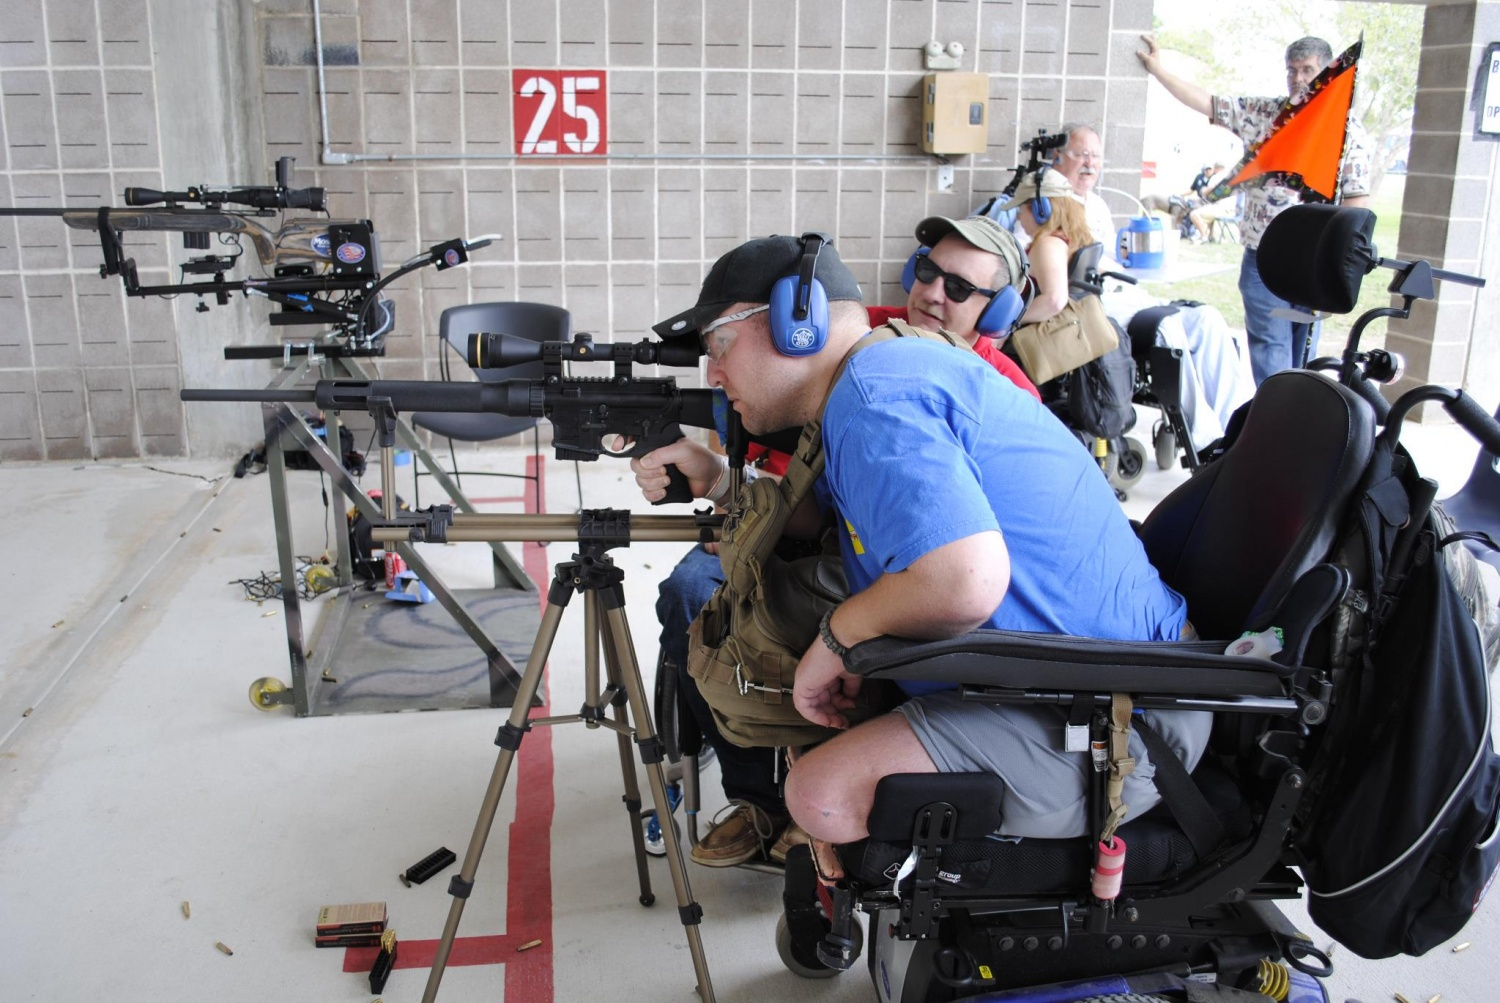 (HAVA) to help the healing and re-integration of disabled veterans and injured active military back into normal American life through participation in outdoor events.